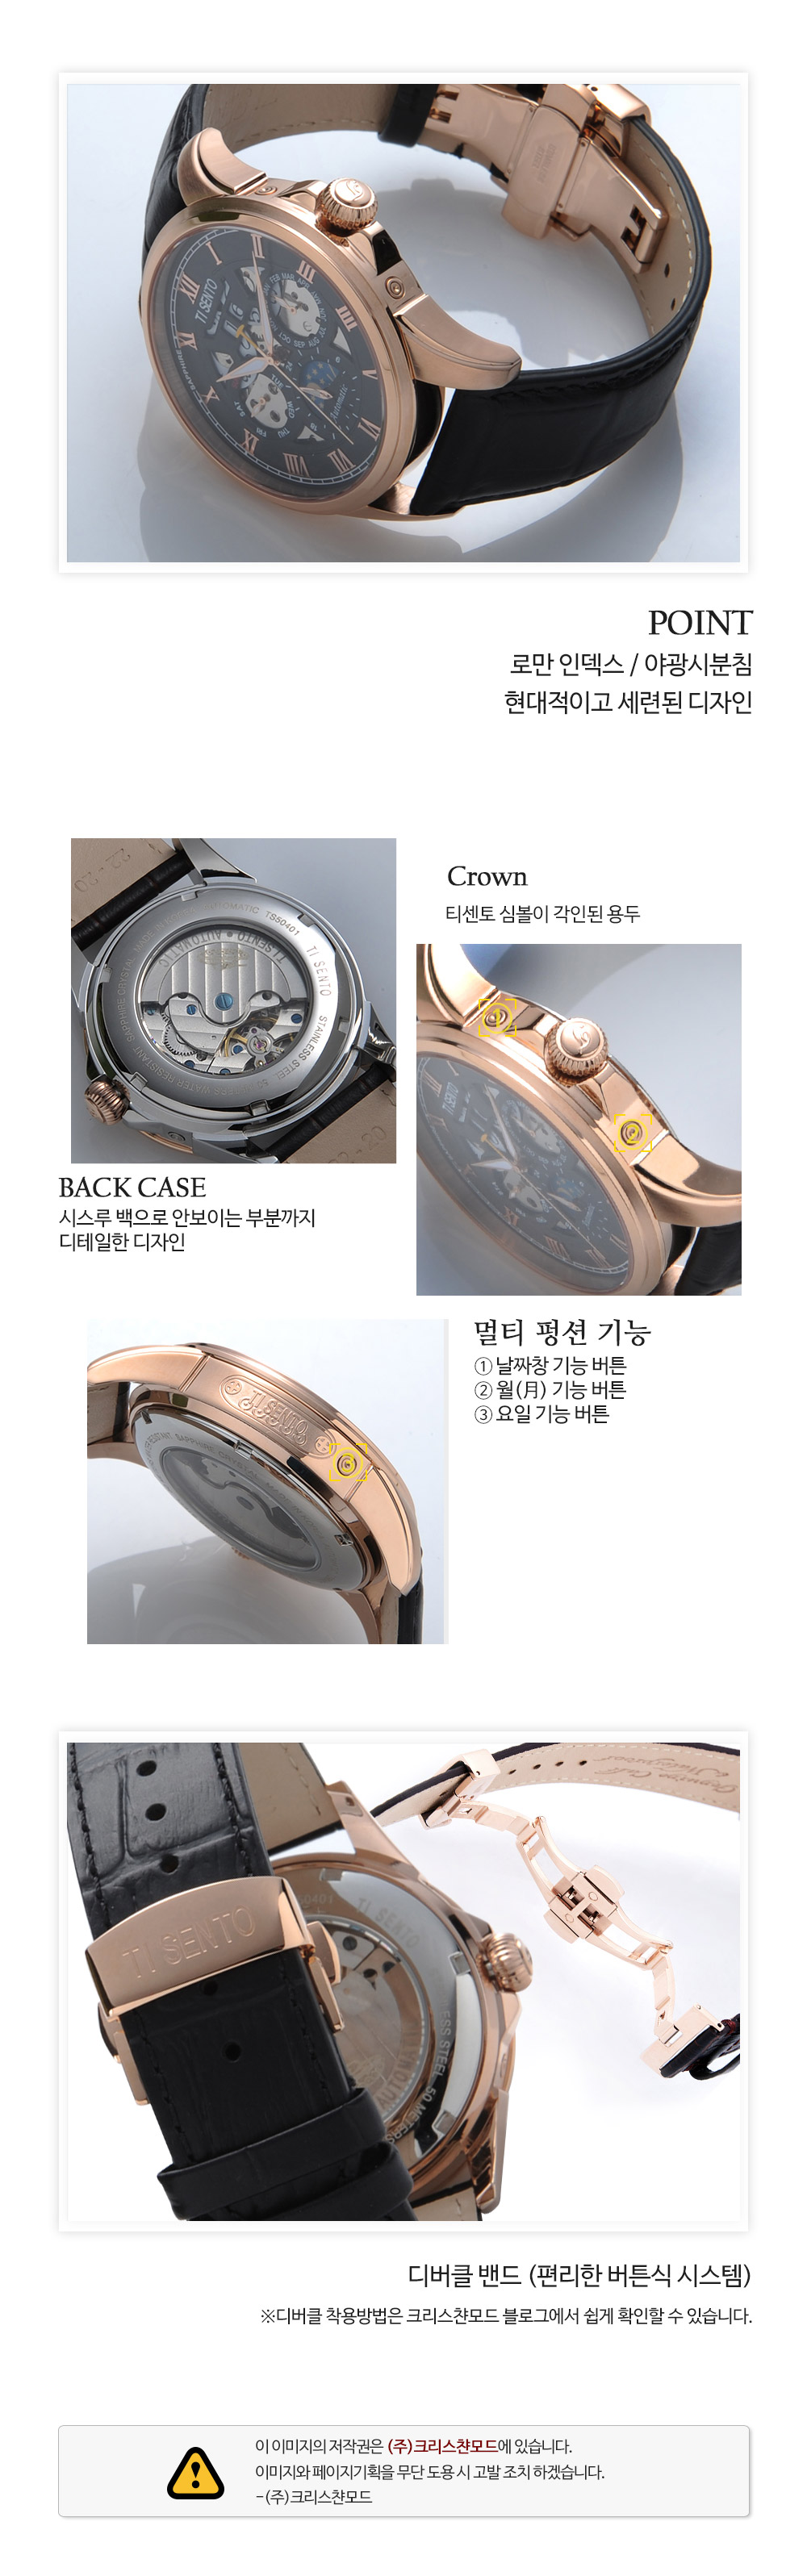 [ TISENTO ] KOREA MADE HIGH QUALITY AUTOMATIC MECHANICAL GENUINE CALF WATERPROOF LEATHER STRAP WATCH TS 50401 BROBK